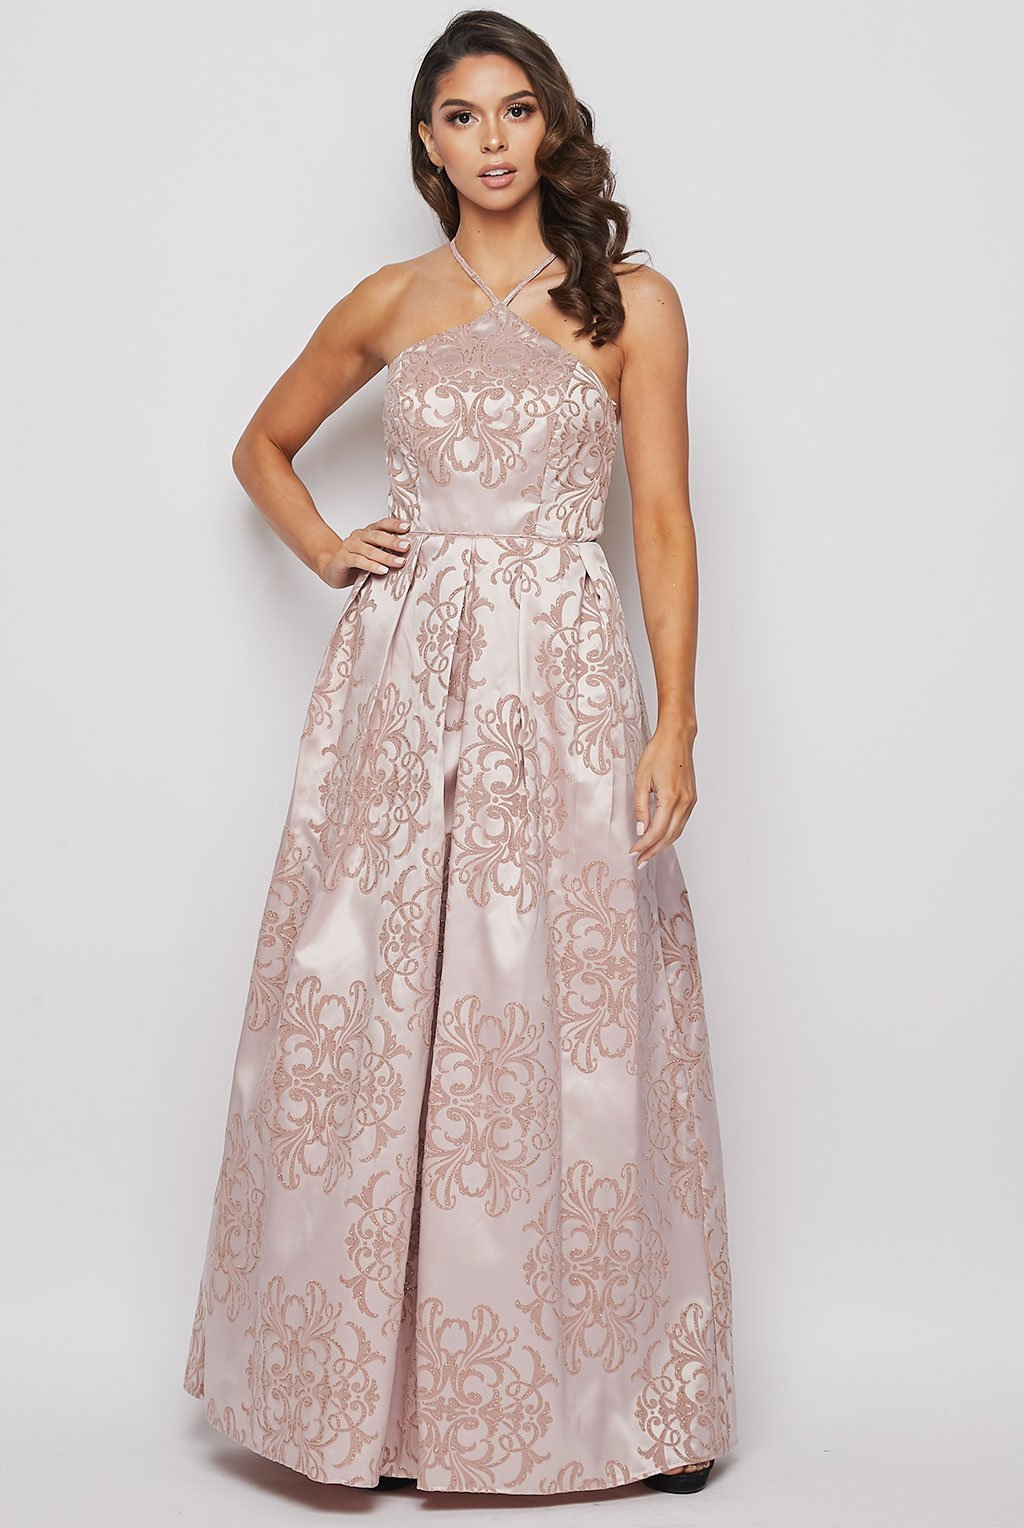 Teeze Me | Glitter Flocked Halter Gown With Pockets | Blush